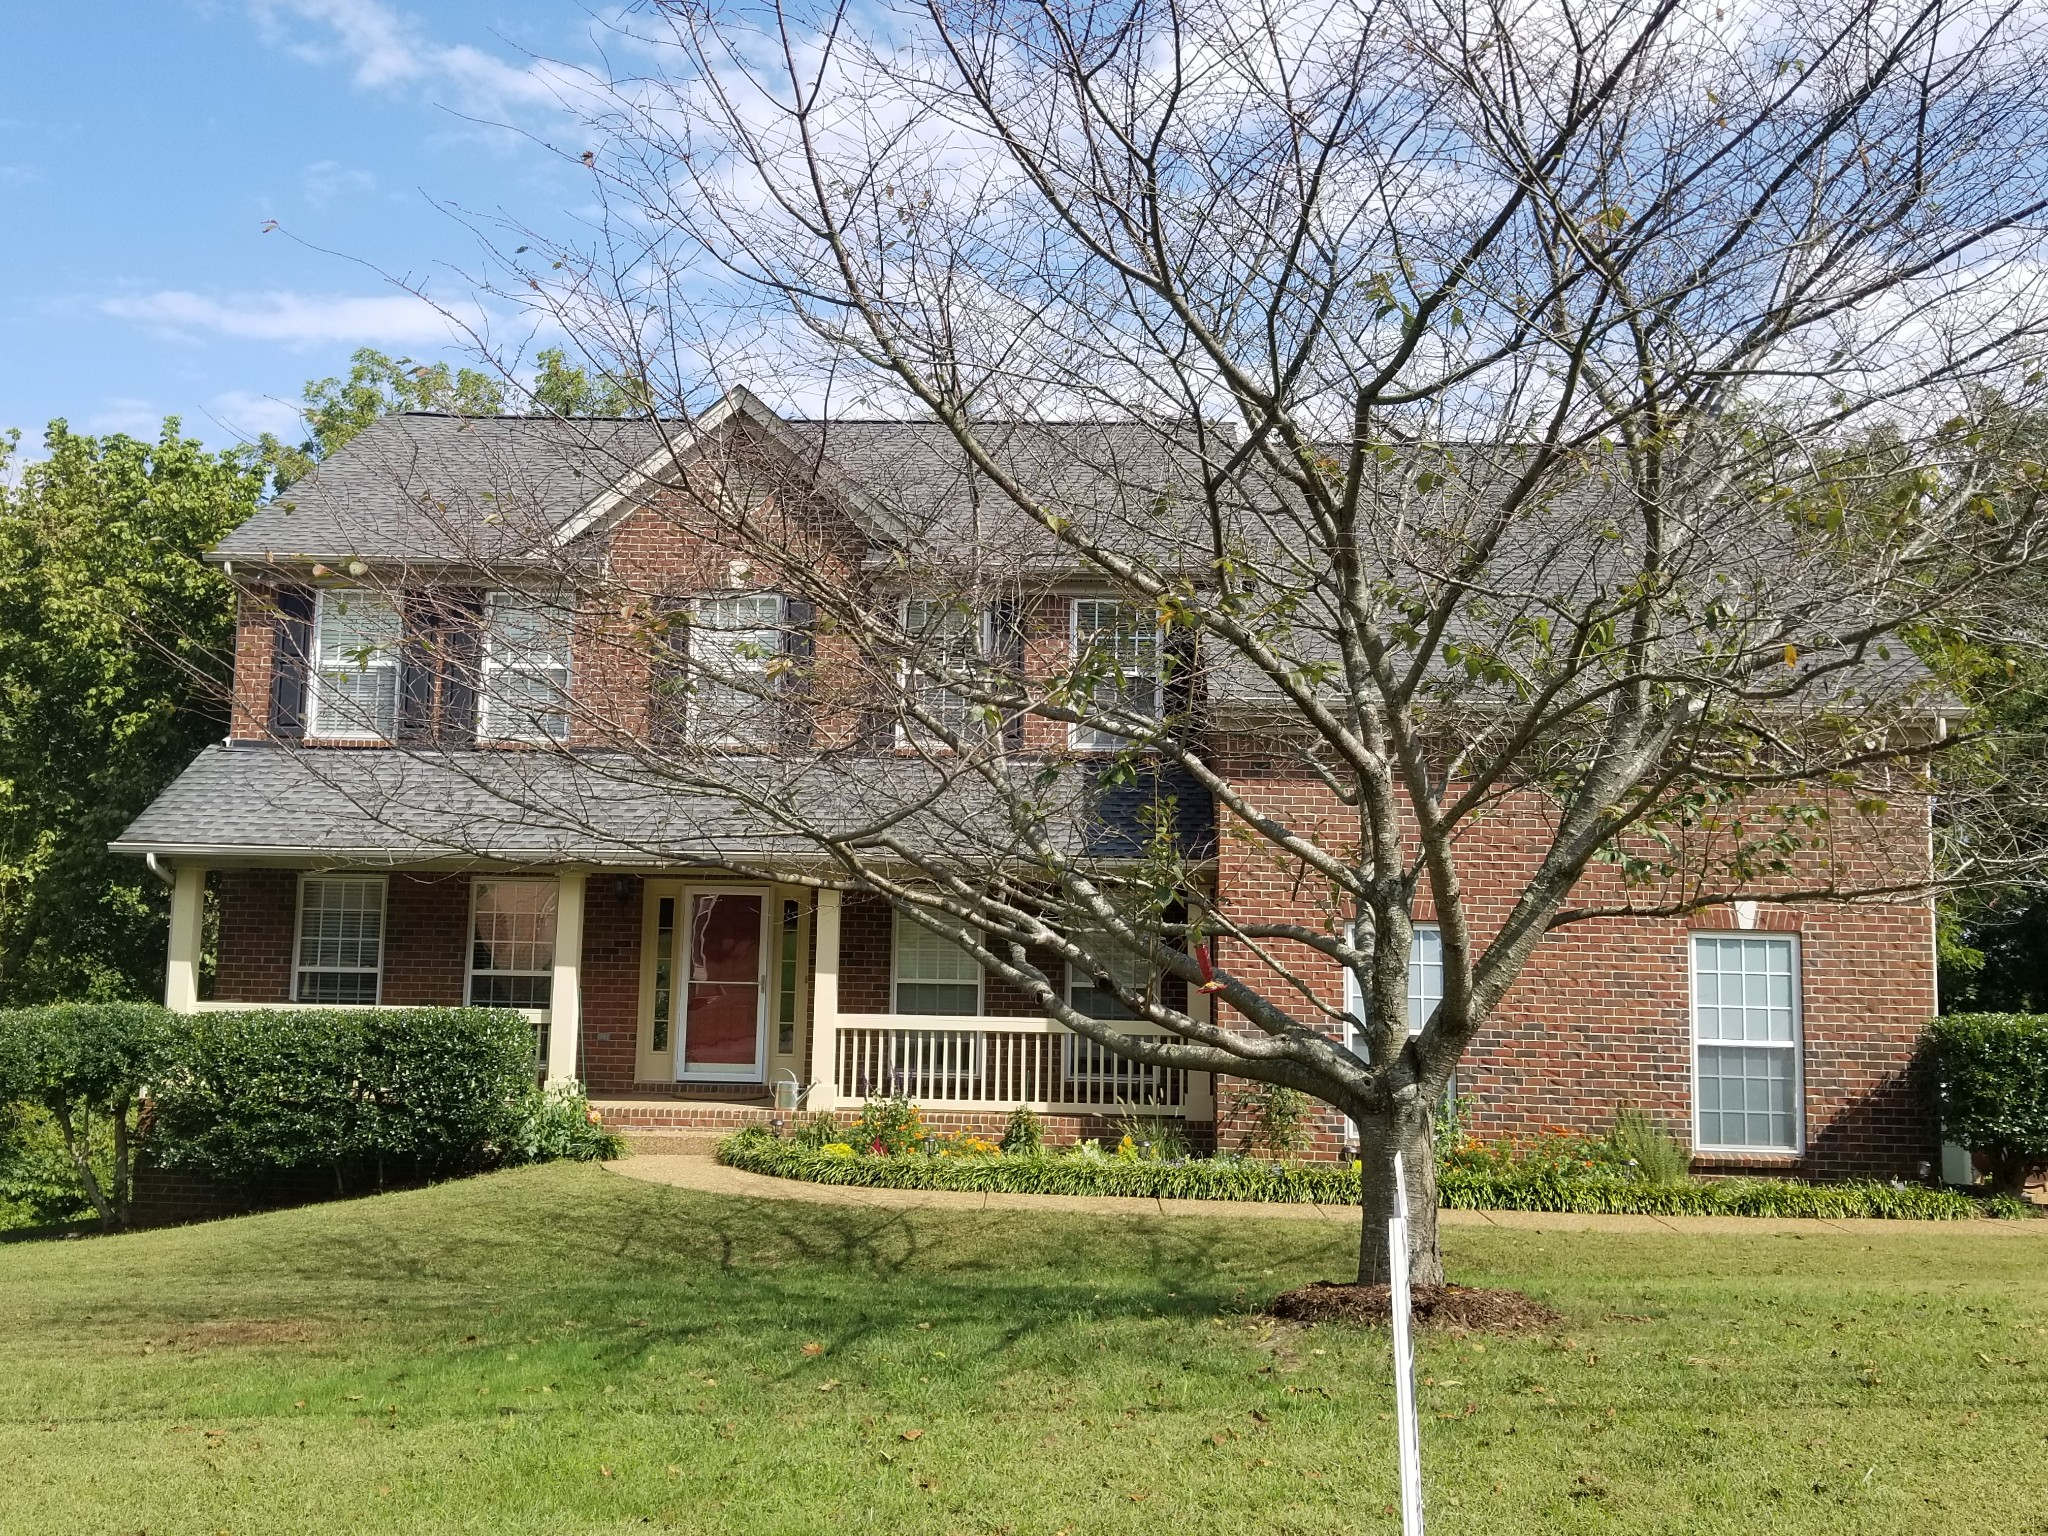 Beautiful 2 story home with rocking chair front porch, beautiful hardwood floors running throughout main floor. HVAC units and roof about 7 years old. Large lot with a tree-lined back yard. 4 bedrooms, lot's of living space. Very desirable neighborhood. Sought after schools! Community pool.